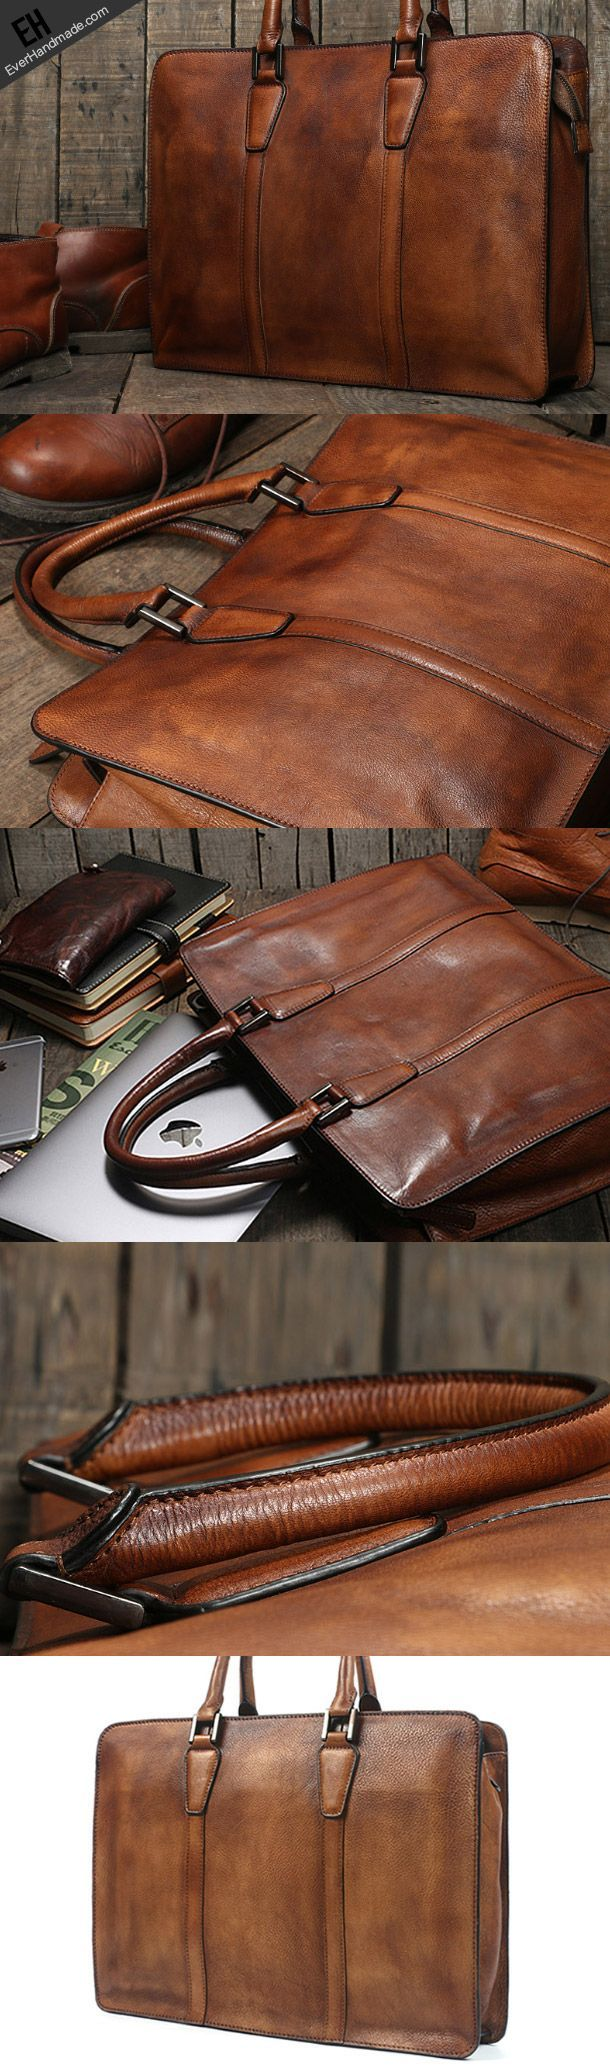 Handmade leather men Briefcase messenger large vintage shoulder laptop bag vintage bag - bags, sling, pack, shopping, school, diaper bag *ad